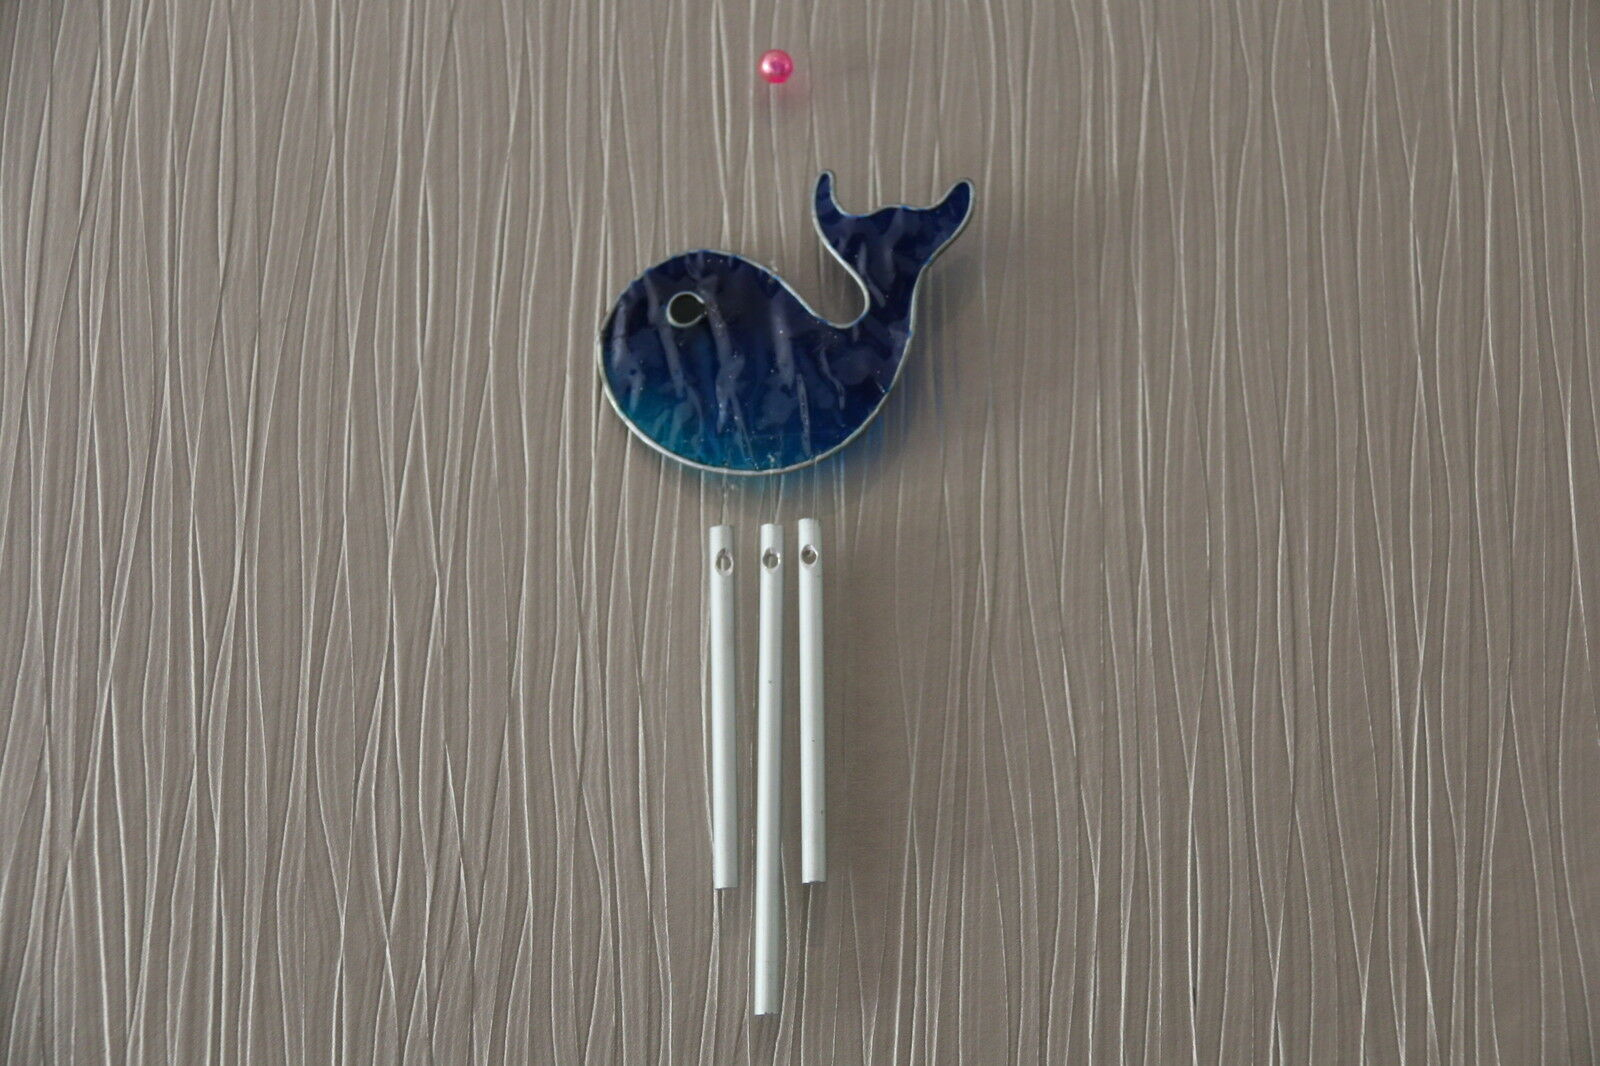 Brand New Bali Handmade Windchime - Leadlight Suncatcher Whale Windchime